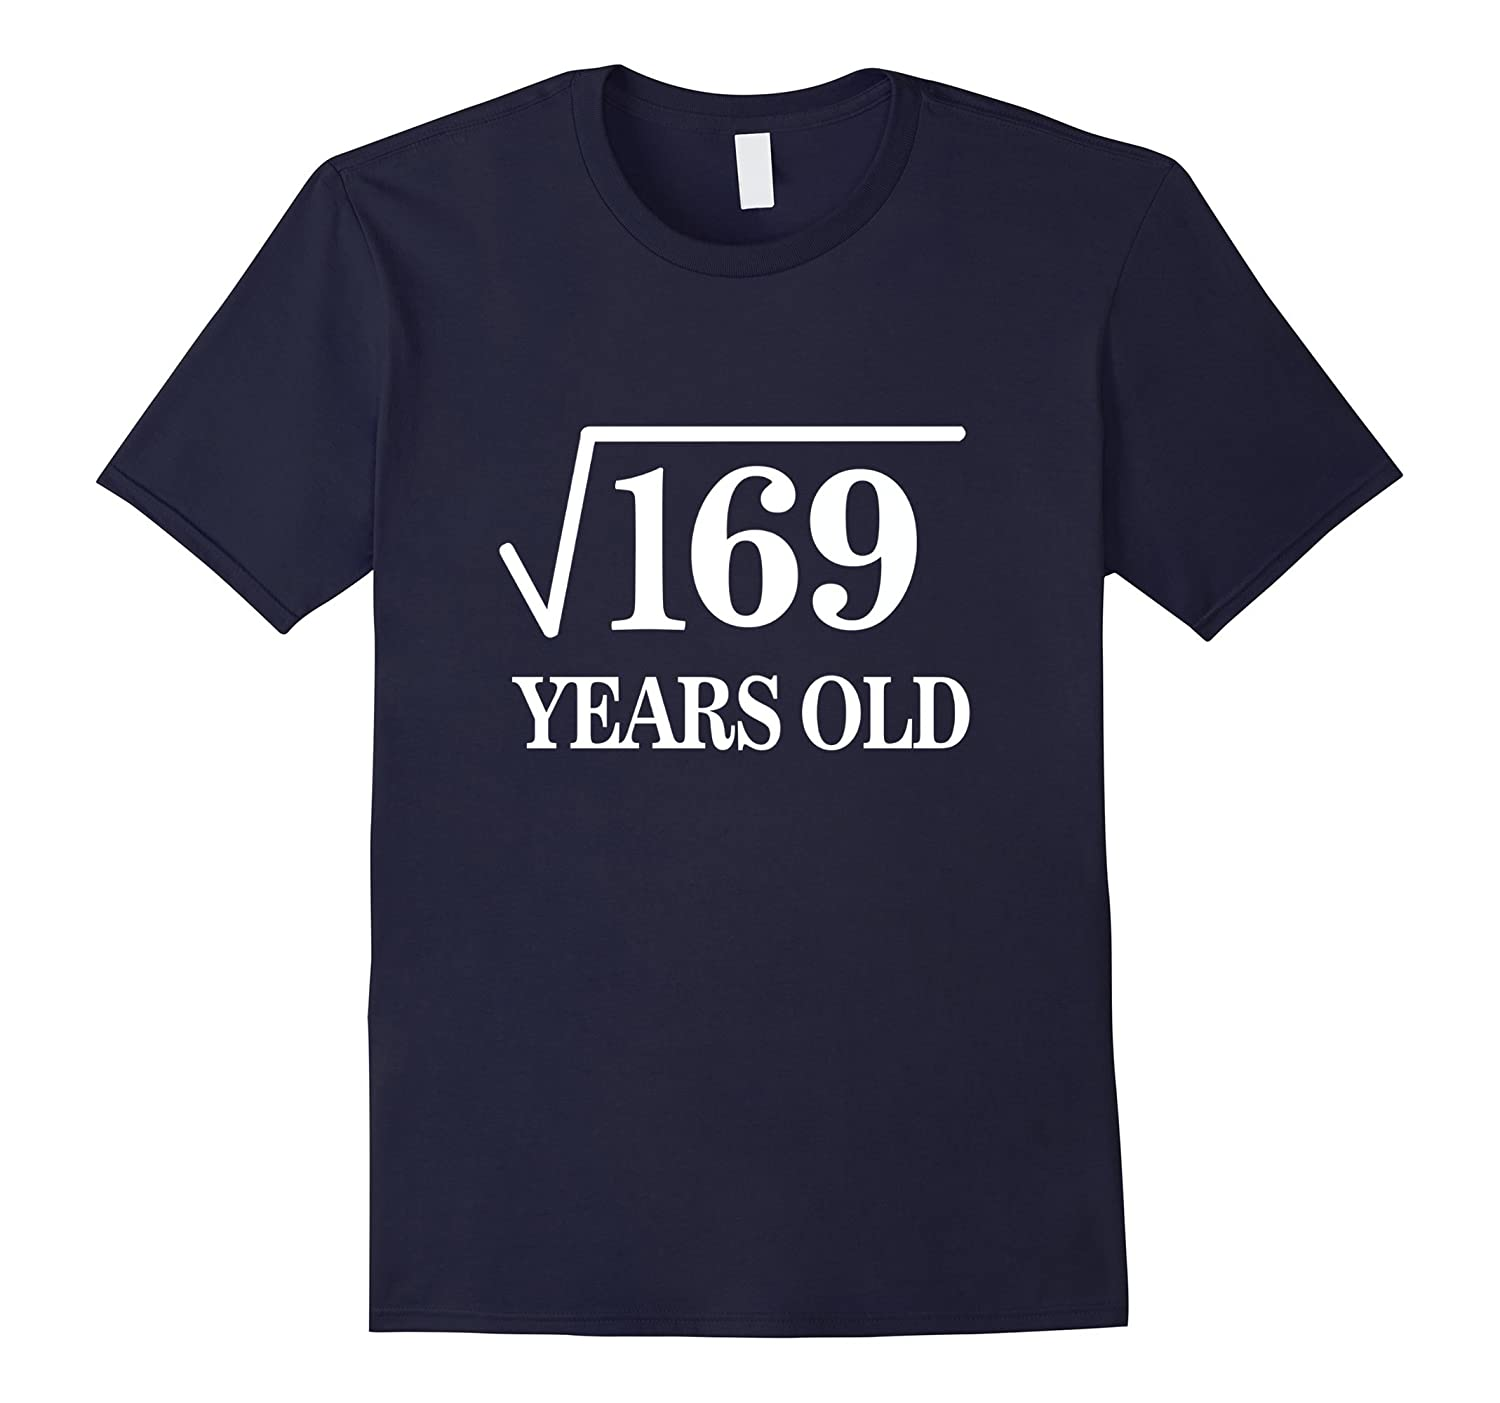 13th birthday T-ShirtSquare Root of 16913 years old-TD